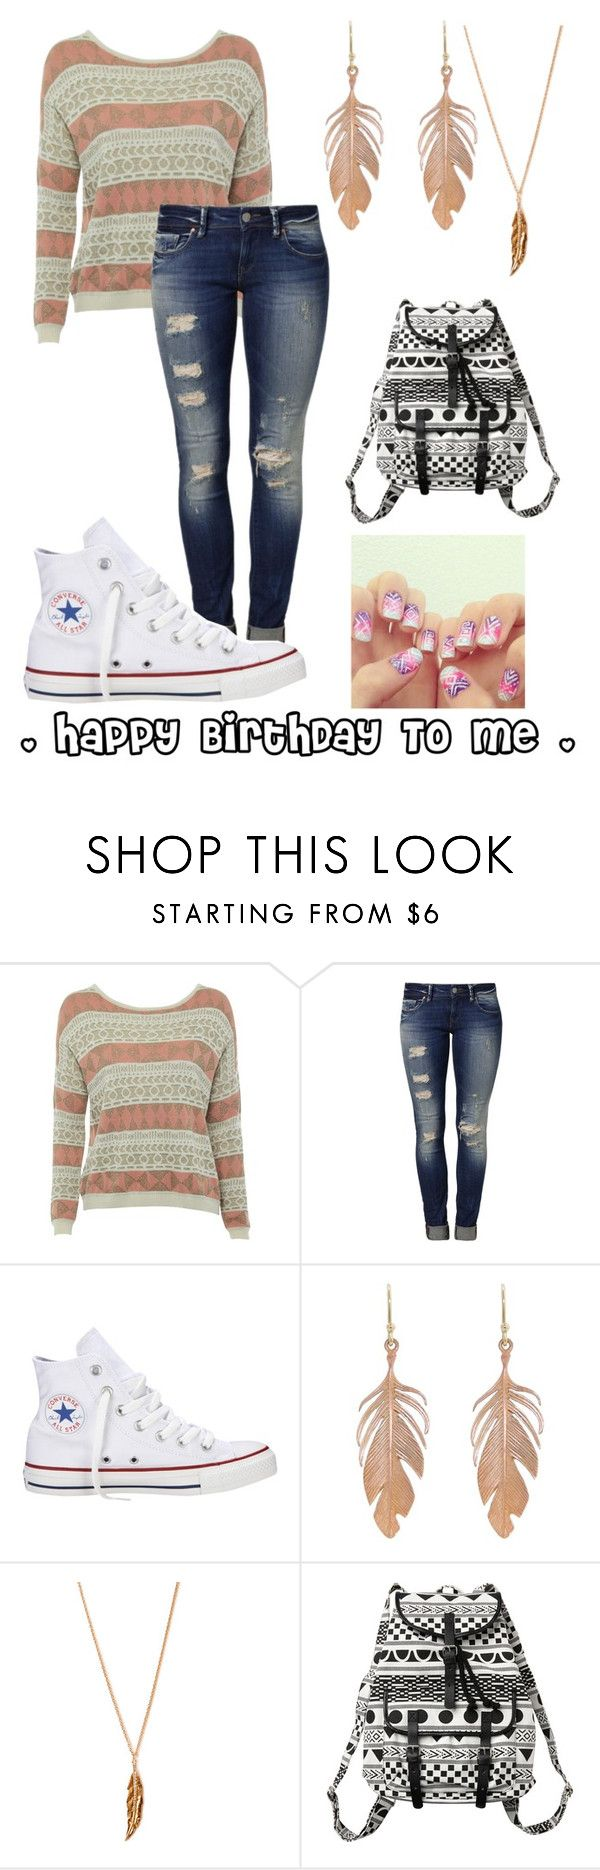 """! It's My Birthday Today !"" by nina4ever14 ❤ liked on Polyvore featuring Sugarhill Boutique, Mavi, Converse, Annette Ferdinandsen, Forever 21 and Monki"